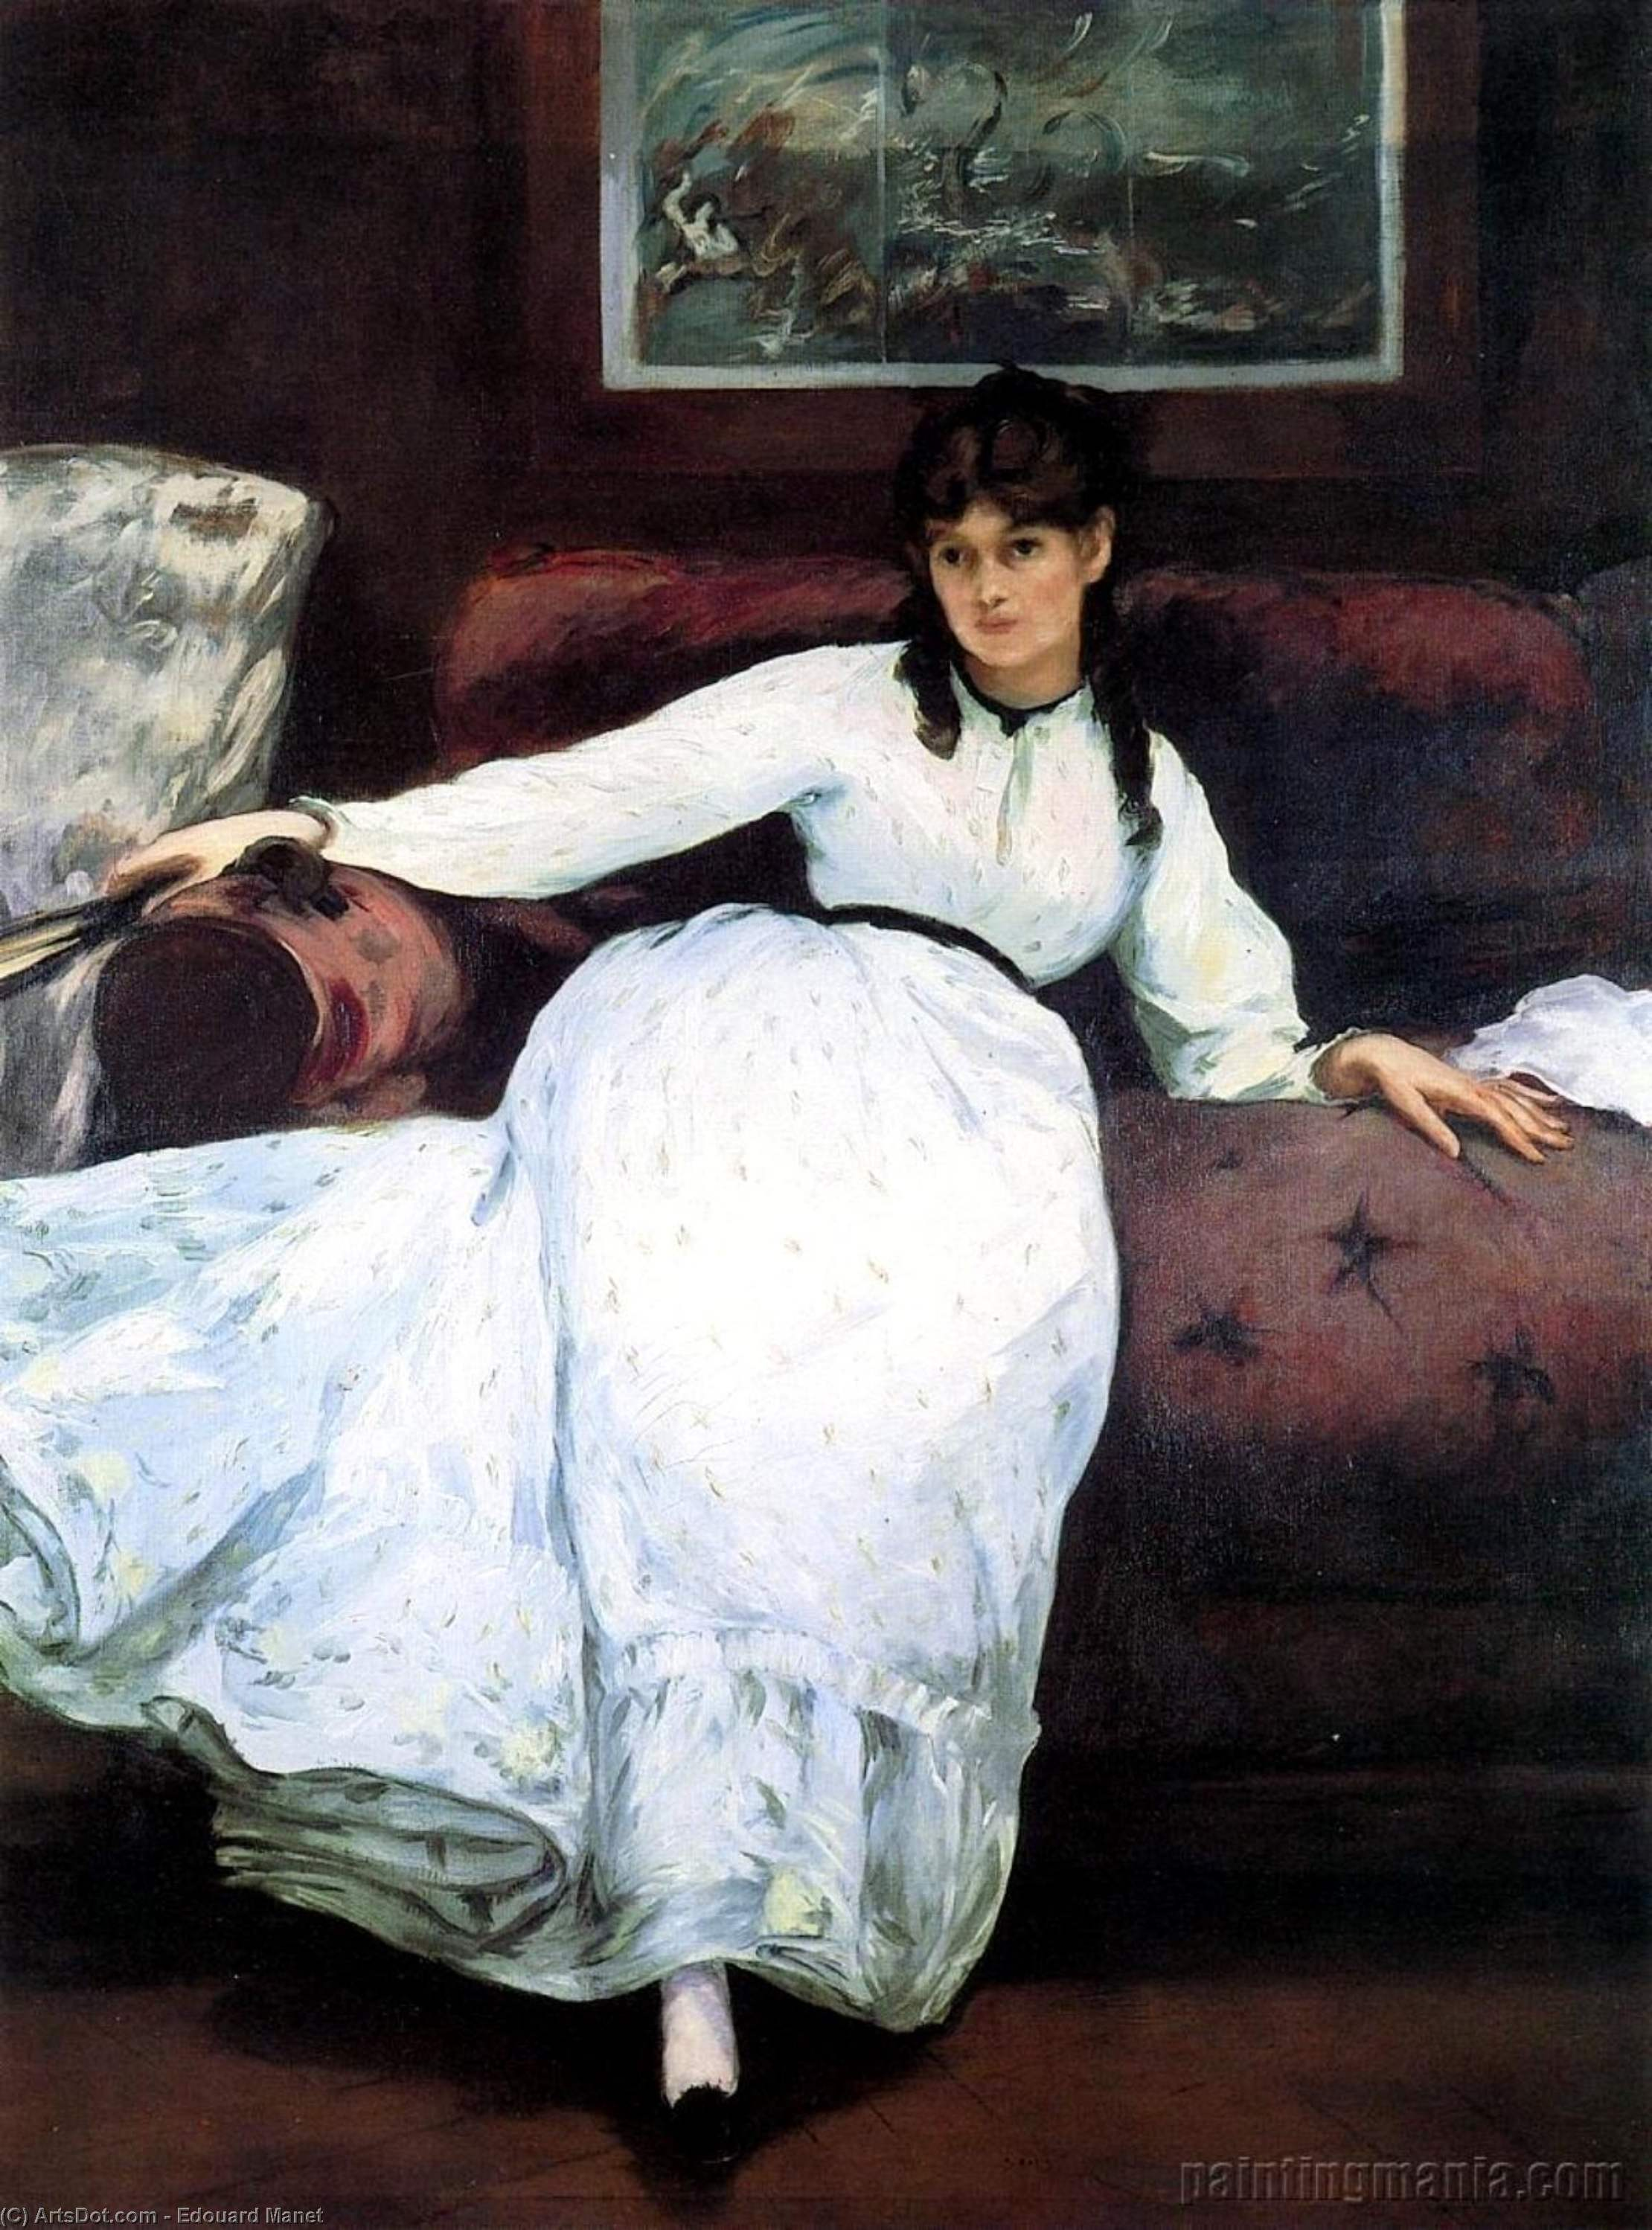 Wikioo.org - The Encyclopedia of Fine Arts - Painting, Artwork by Edouard Manet - The Rest, portrait of Berthe Morisot